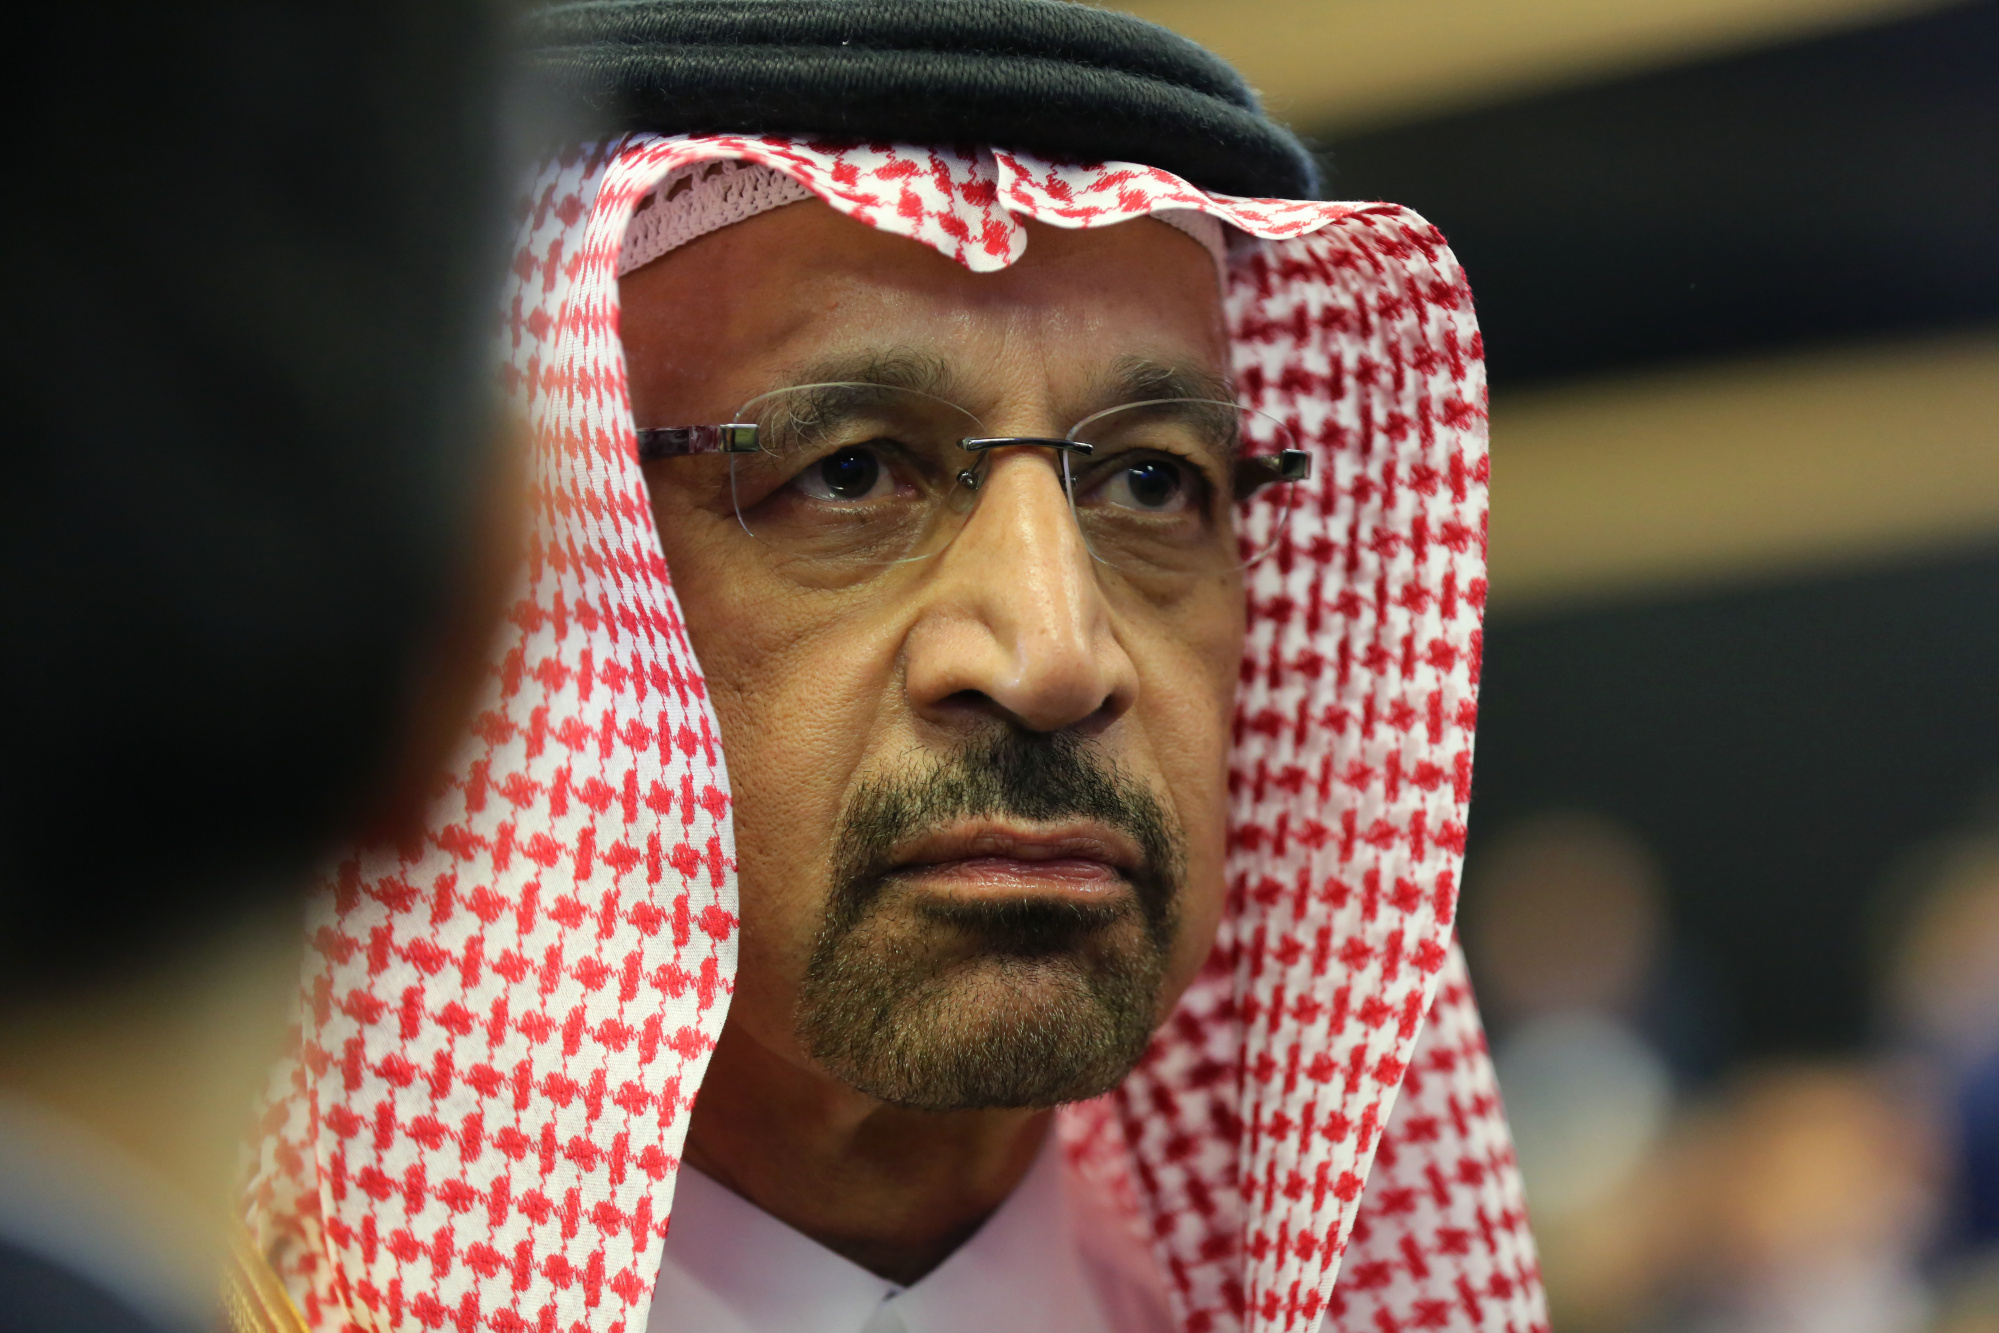 Khalid al-Falih, Saudi Arabia's energy minister, looks on during a panel debate at the St. Petersburg International Economic Forum (SPIEF) in St. Petersburg, Russia. Photographer: Chris Ratcliffe/Bloomberg